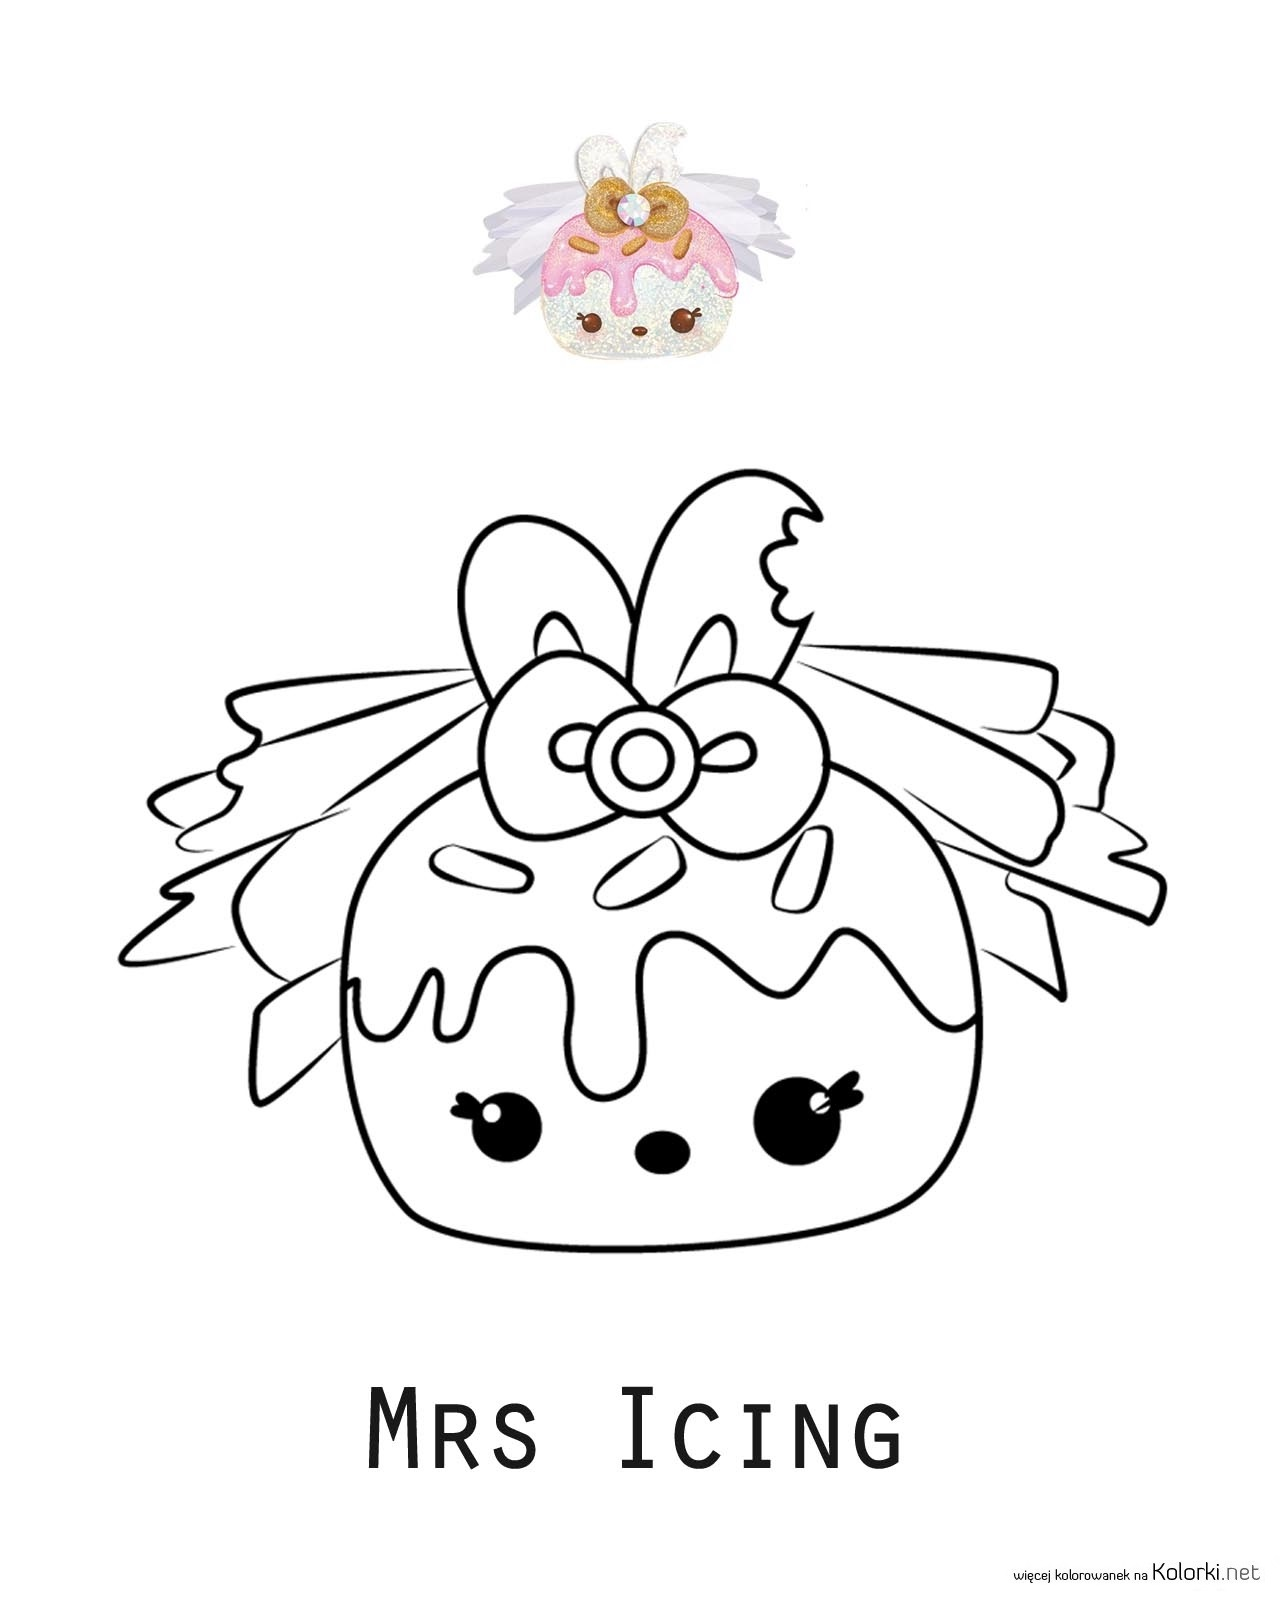 Coloring Page Num Noms Mrs Icing Cake